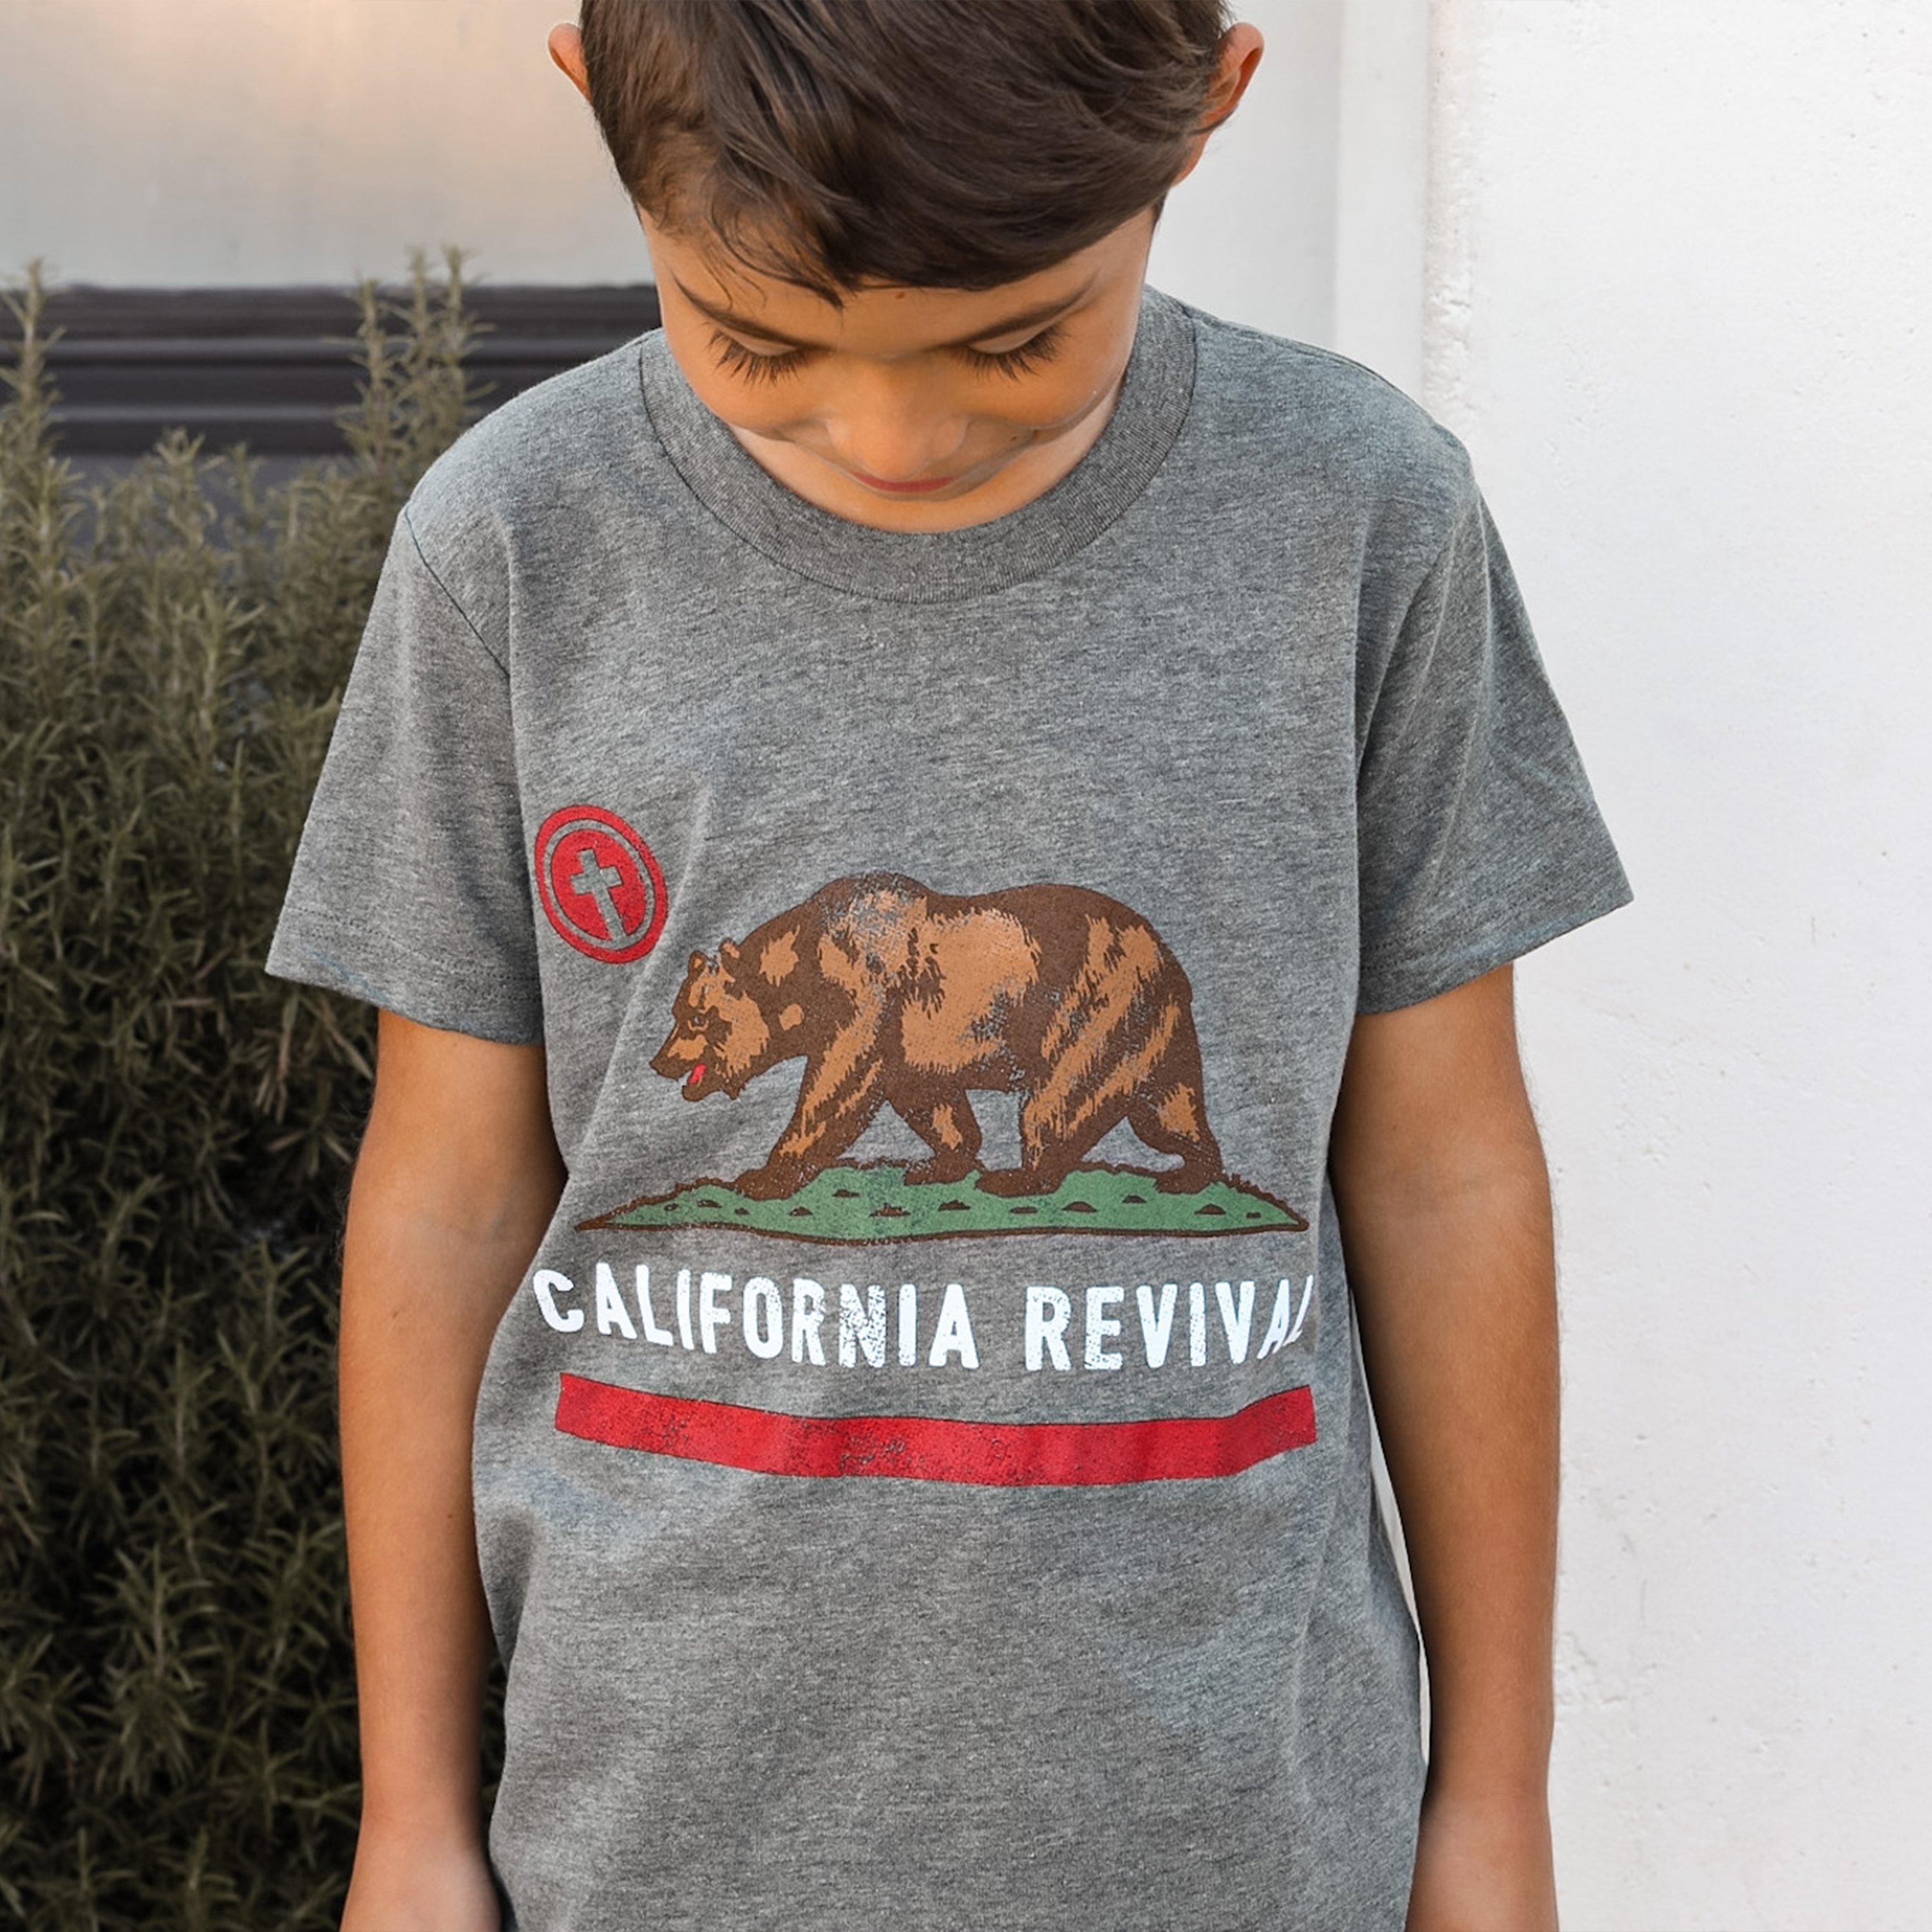 California Revival T-Shirt, Youth